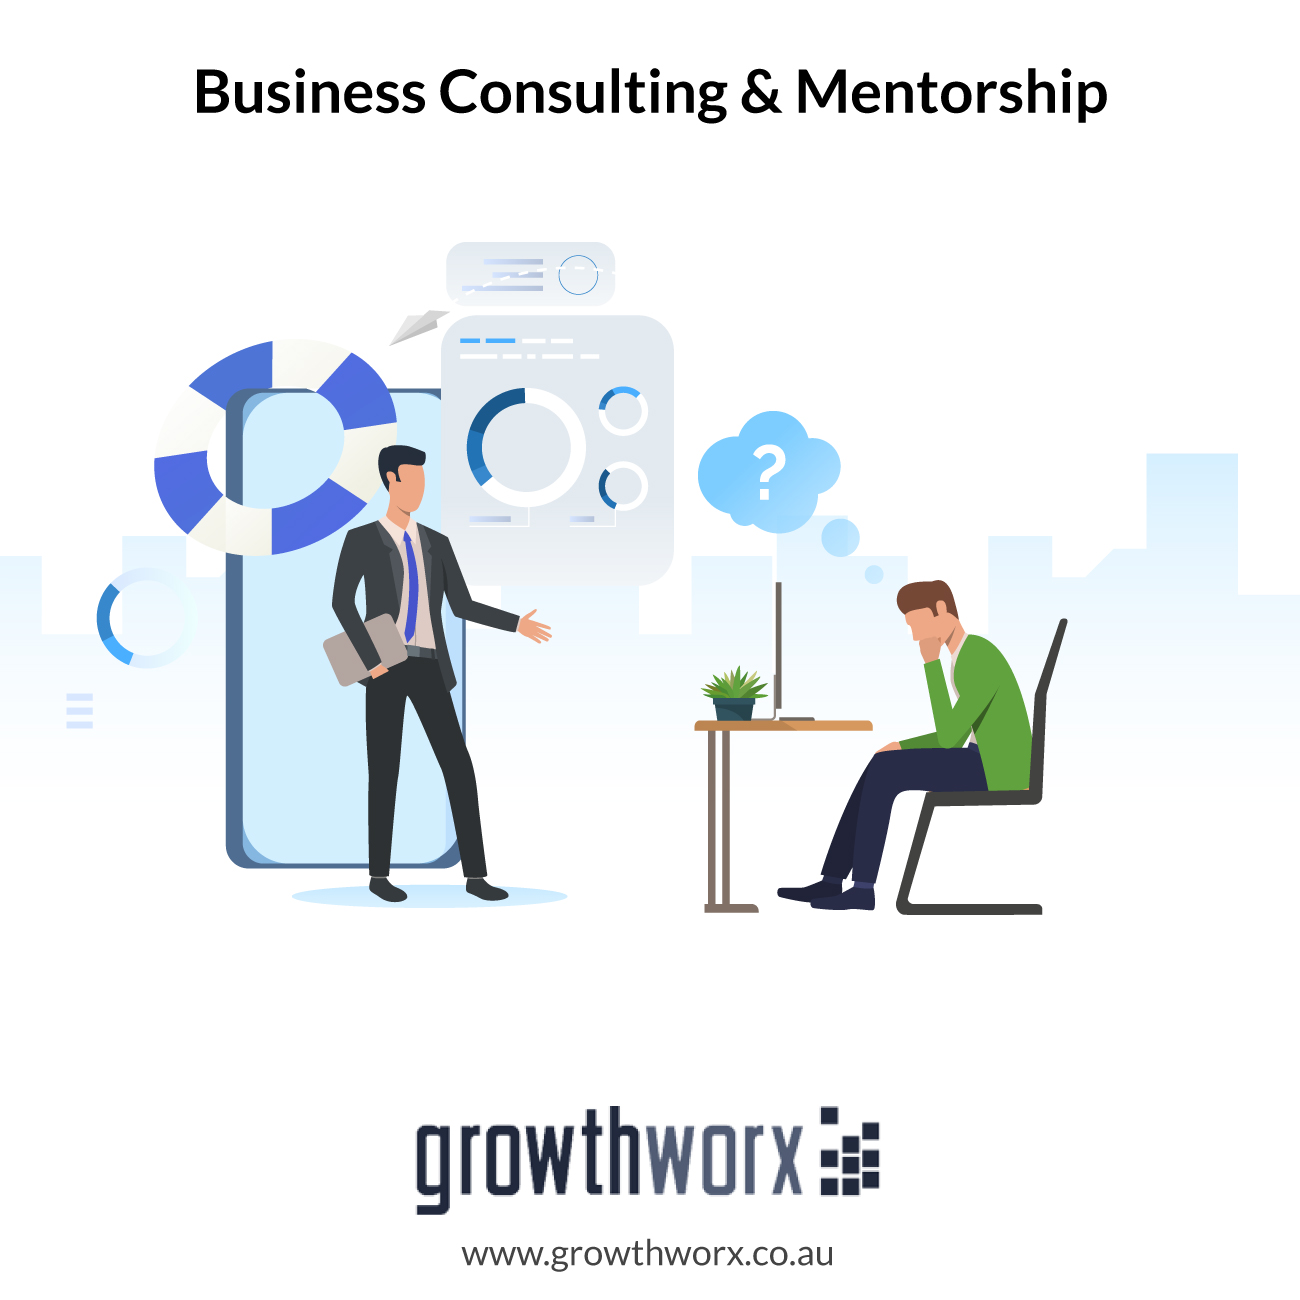 I will business consulting and mentorship 1